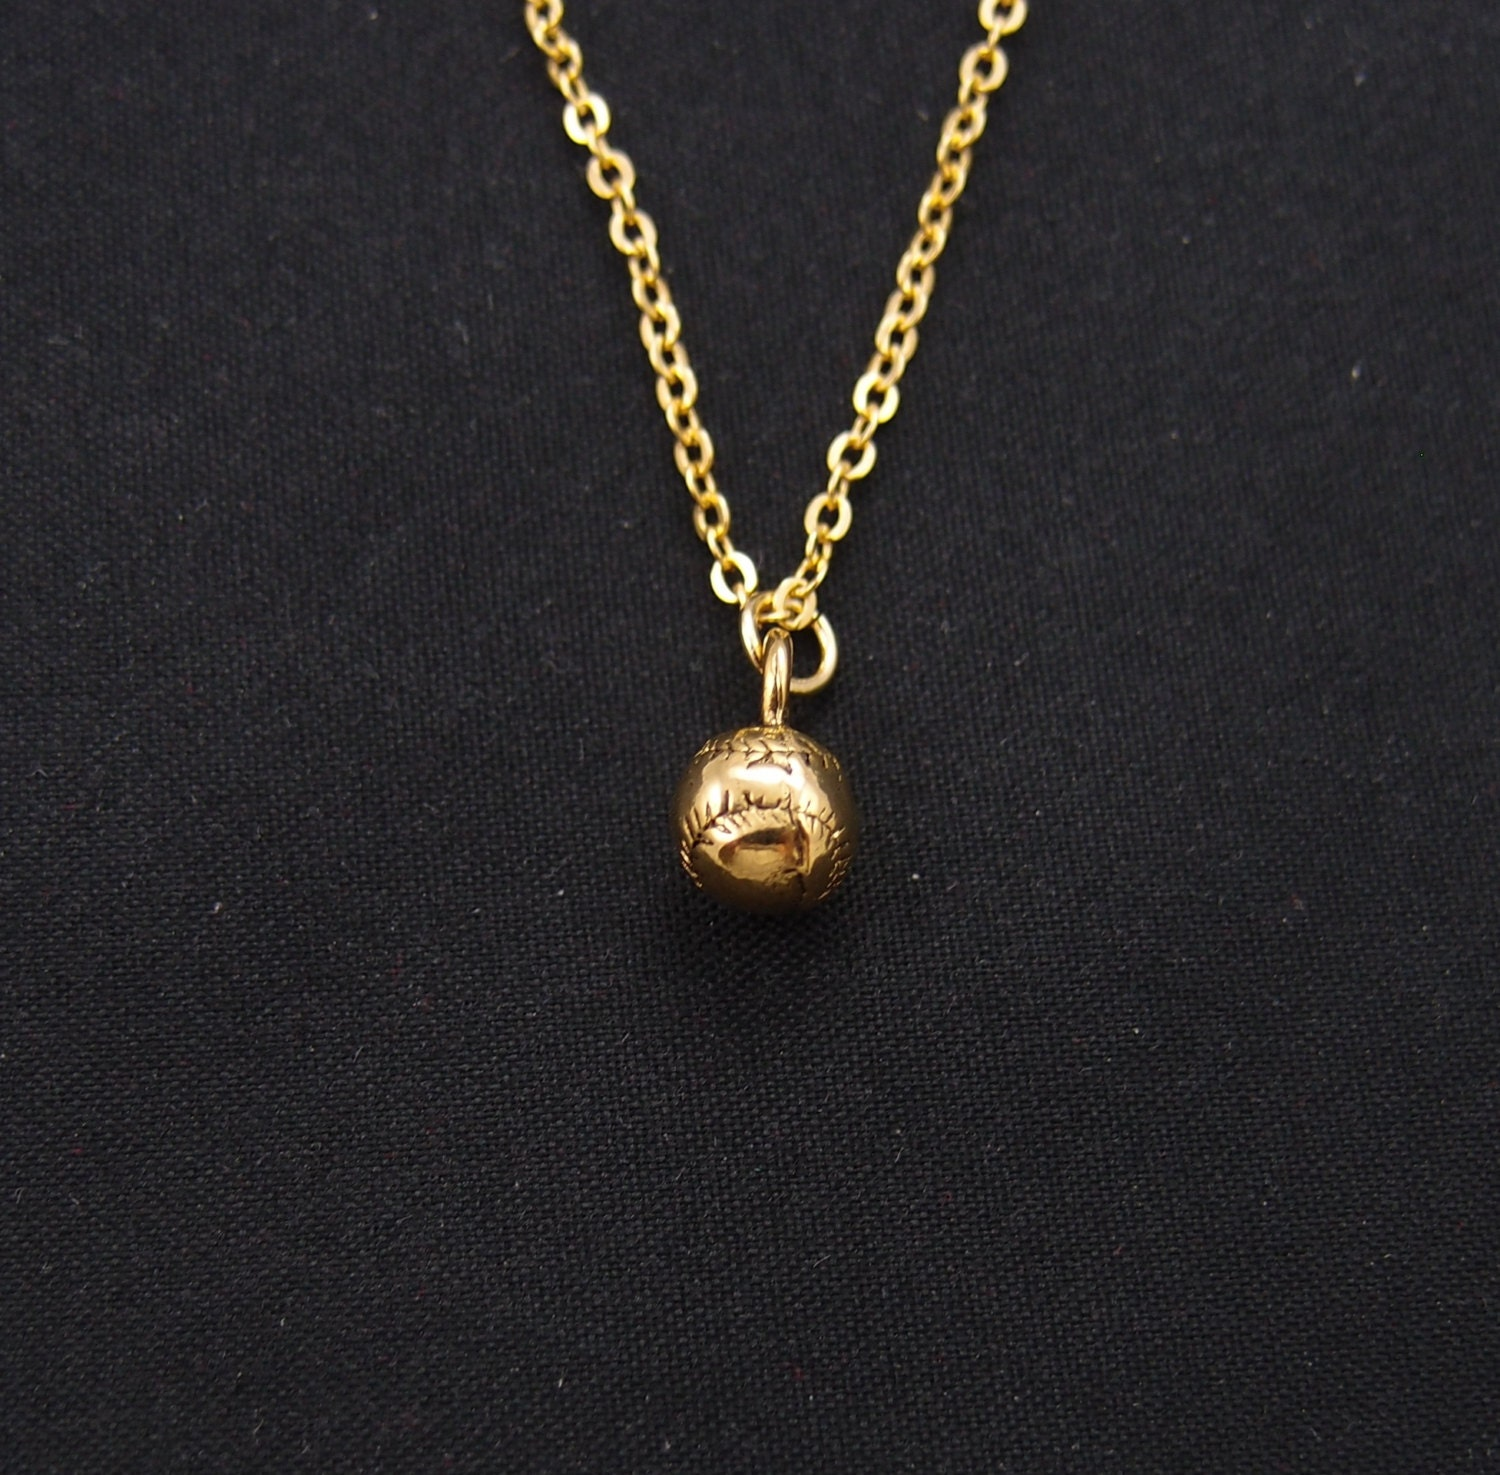 and com gold ip pendant baseball bat necklace walmart glove